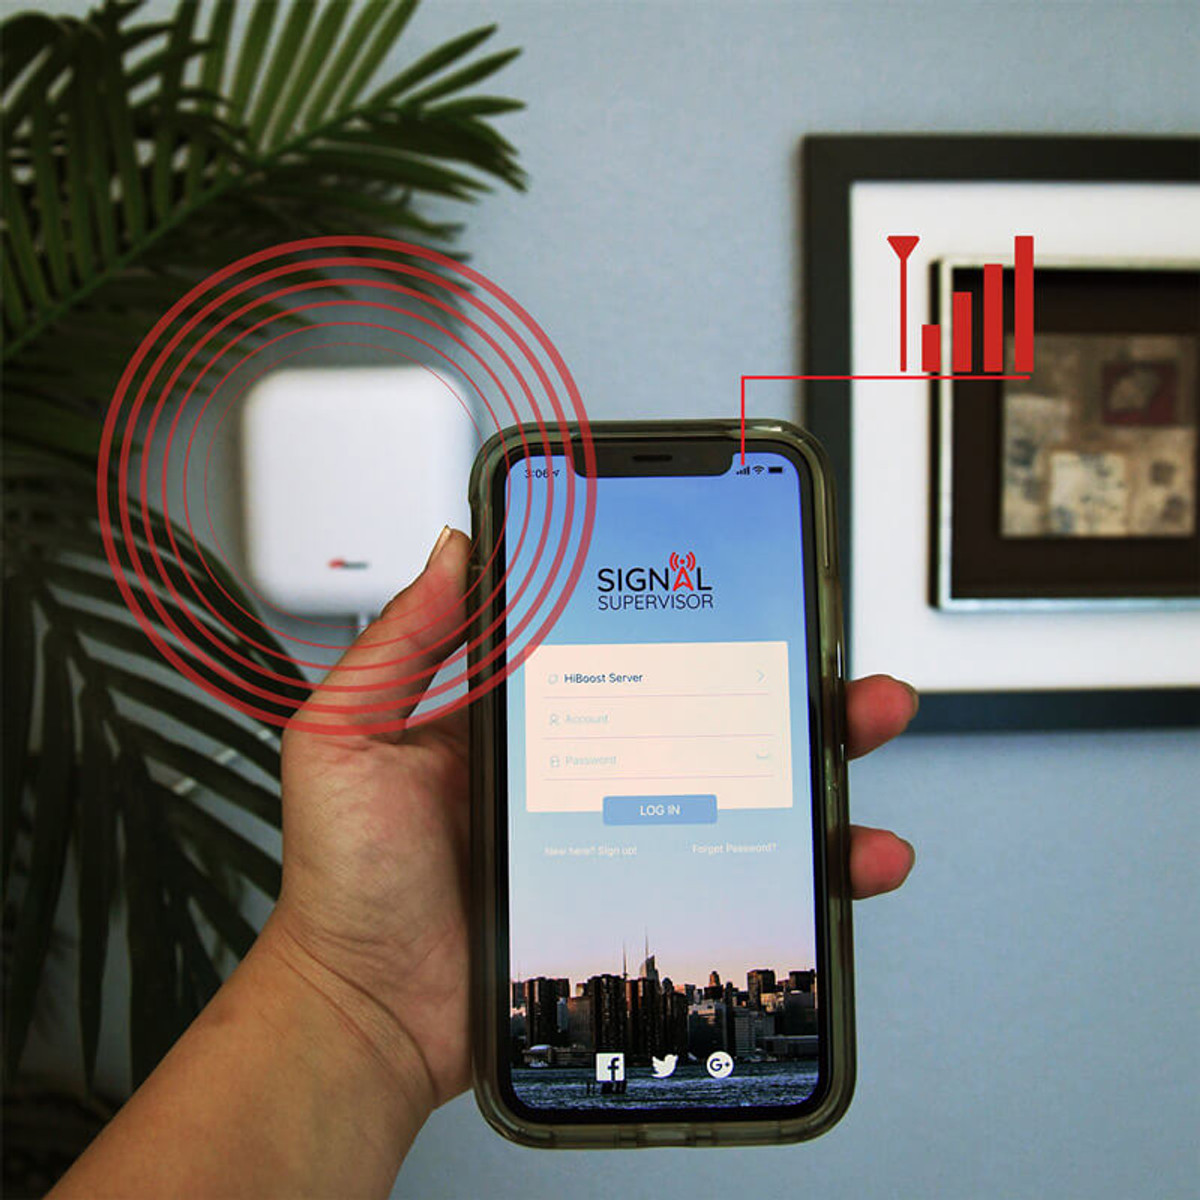 HiBoost Signal Booster App: Signal Supervisor Manages Home Settings